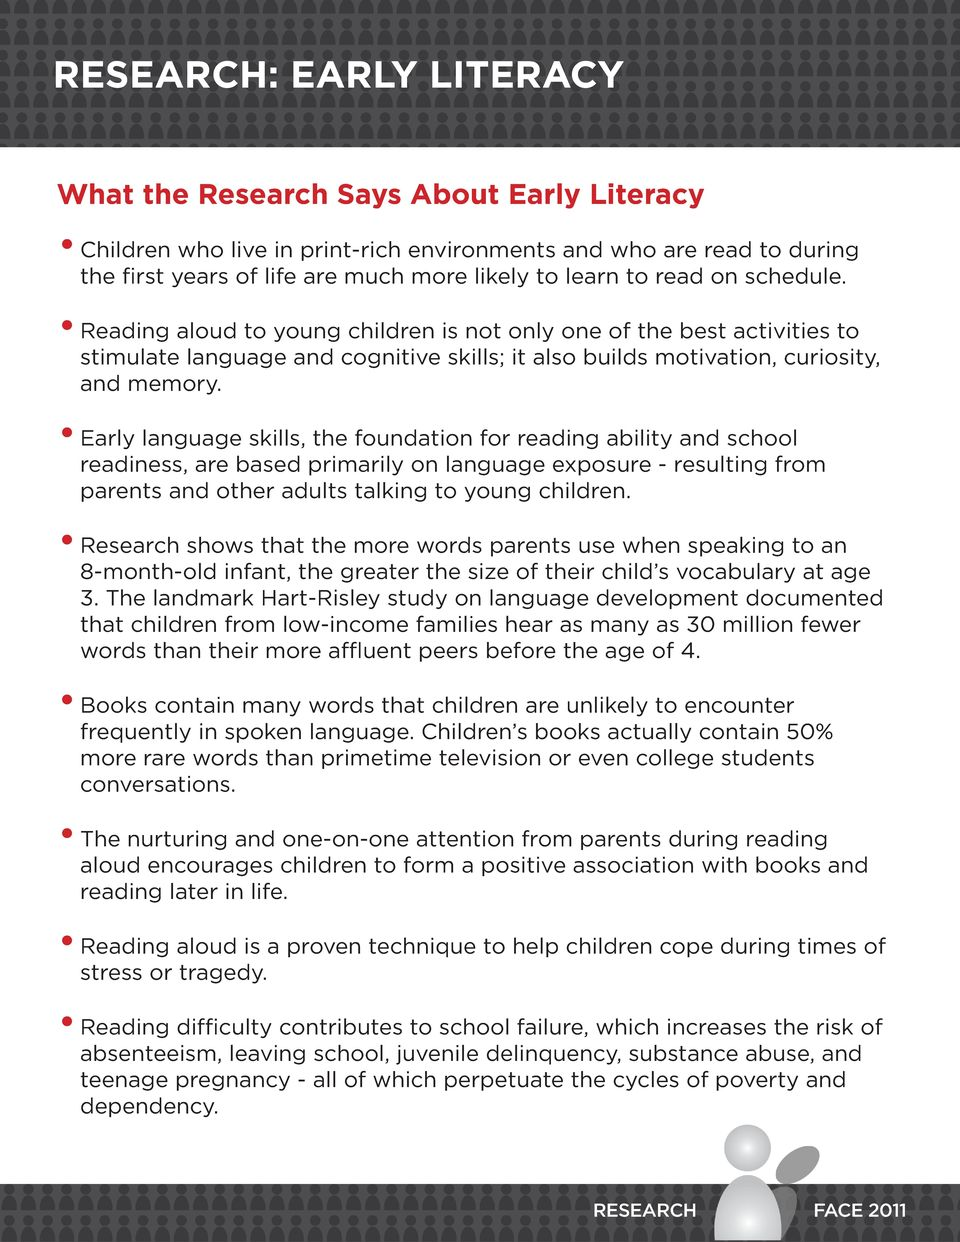 Early language skills, the foundation for reading ability and school readiness, are based primarily on language exposure - resulting from parents and other adults talking to young children.